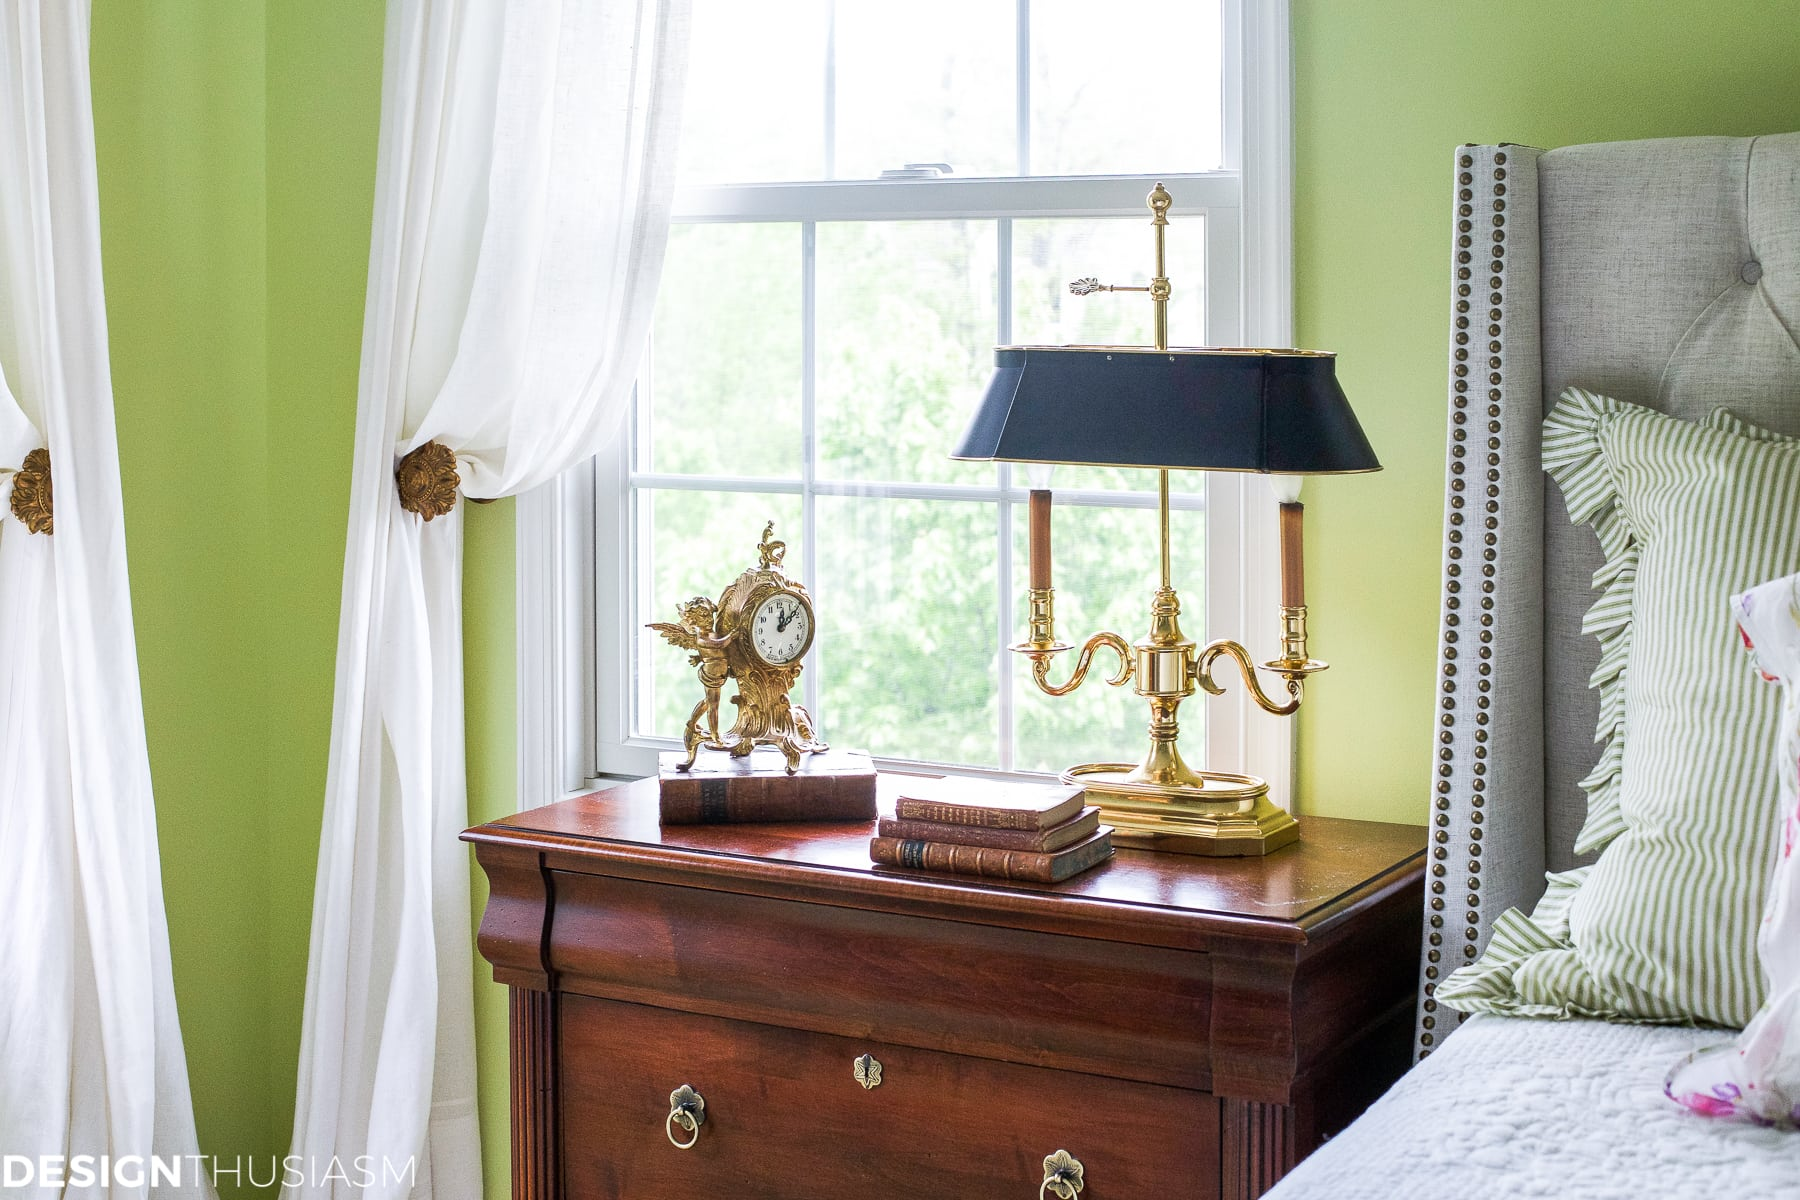 Refining the Master Bedroom with a White Tufted Headboard - designthusiasm.com